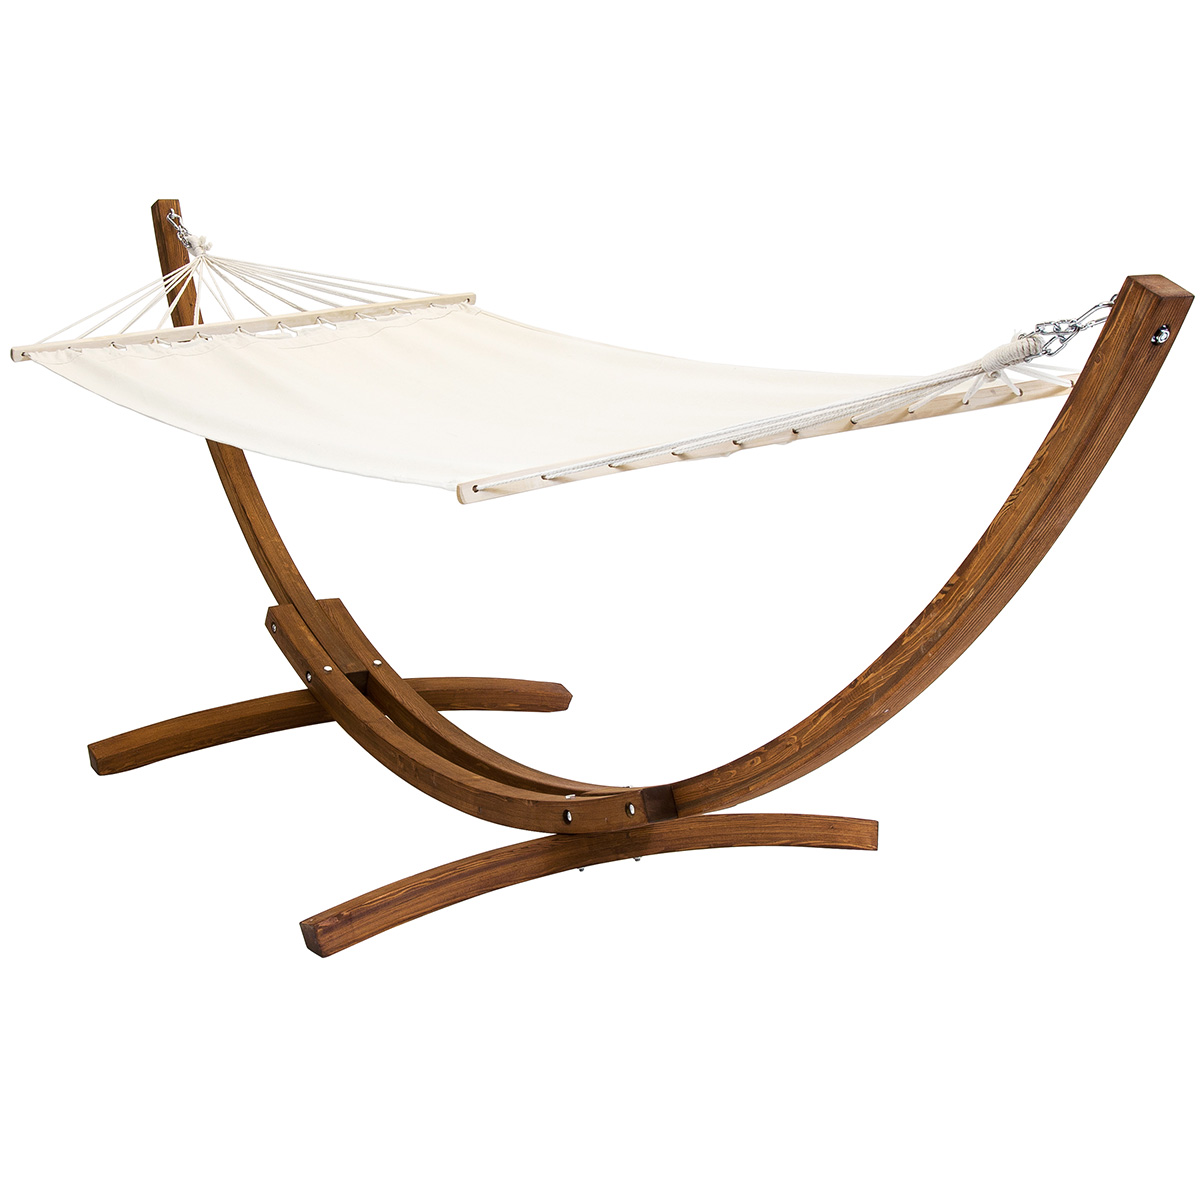 Free Standing Canvas Garden Hammock With Wooden Arc Stand